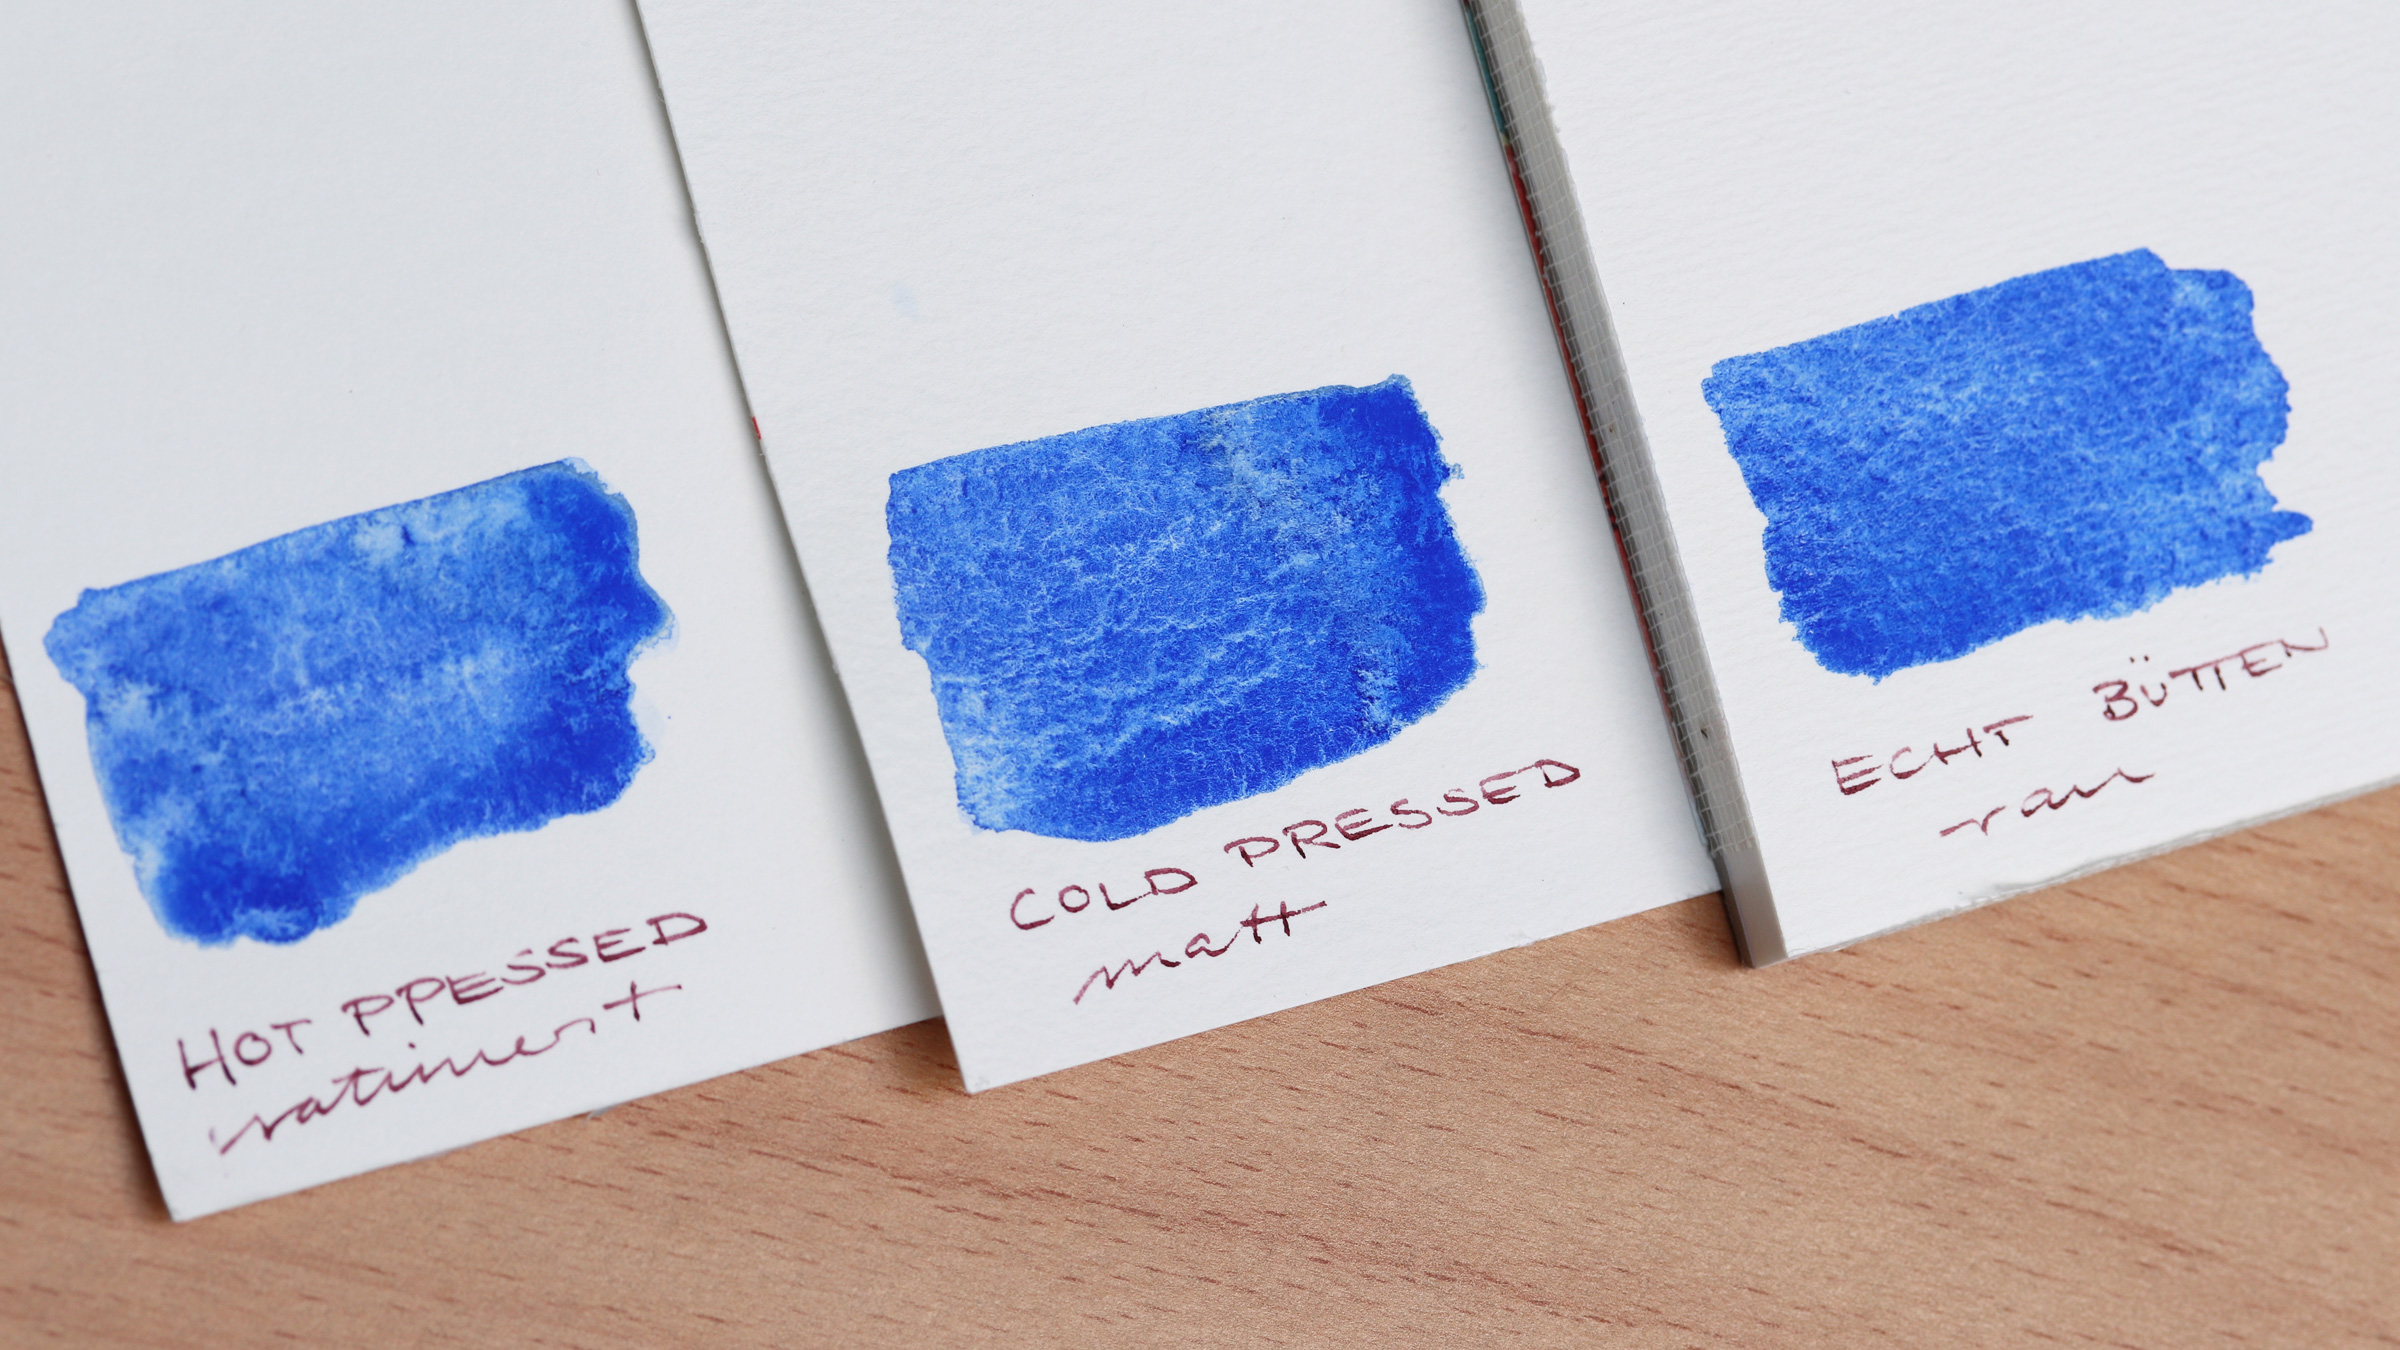 Granulierende Aquarellfarbe – Schmincke Französisch Ultramarin Blau (493) auf verschiedenen Aquarellpapieren: Hot pressed/satiniert, cold pressed/matt und Echt Bütten/rau.